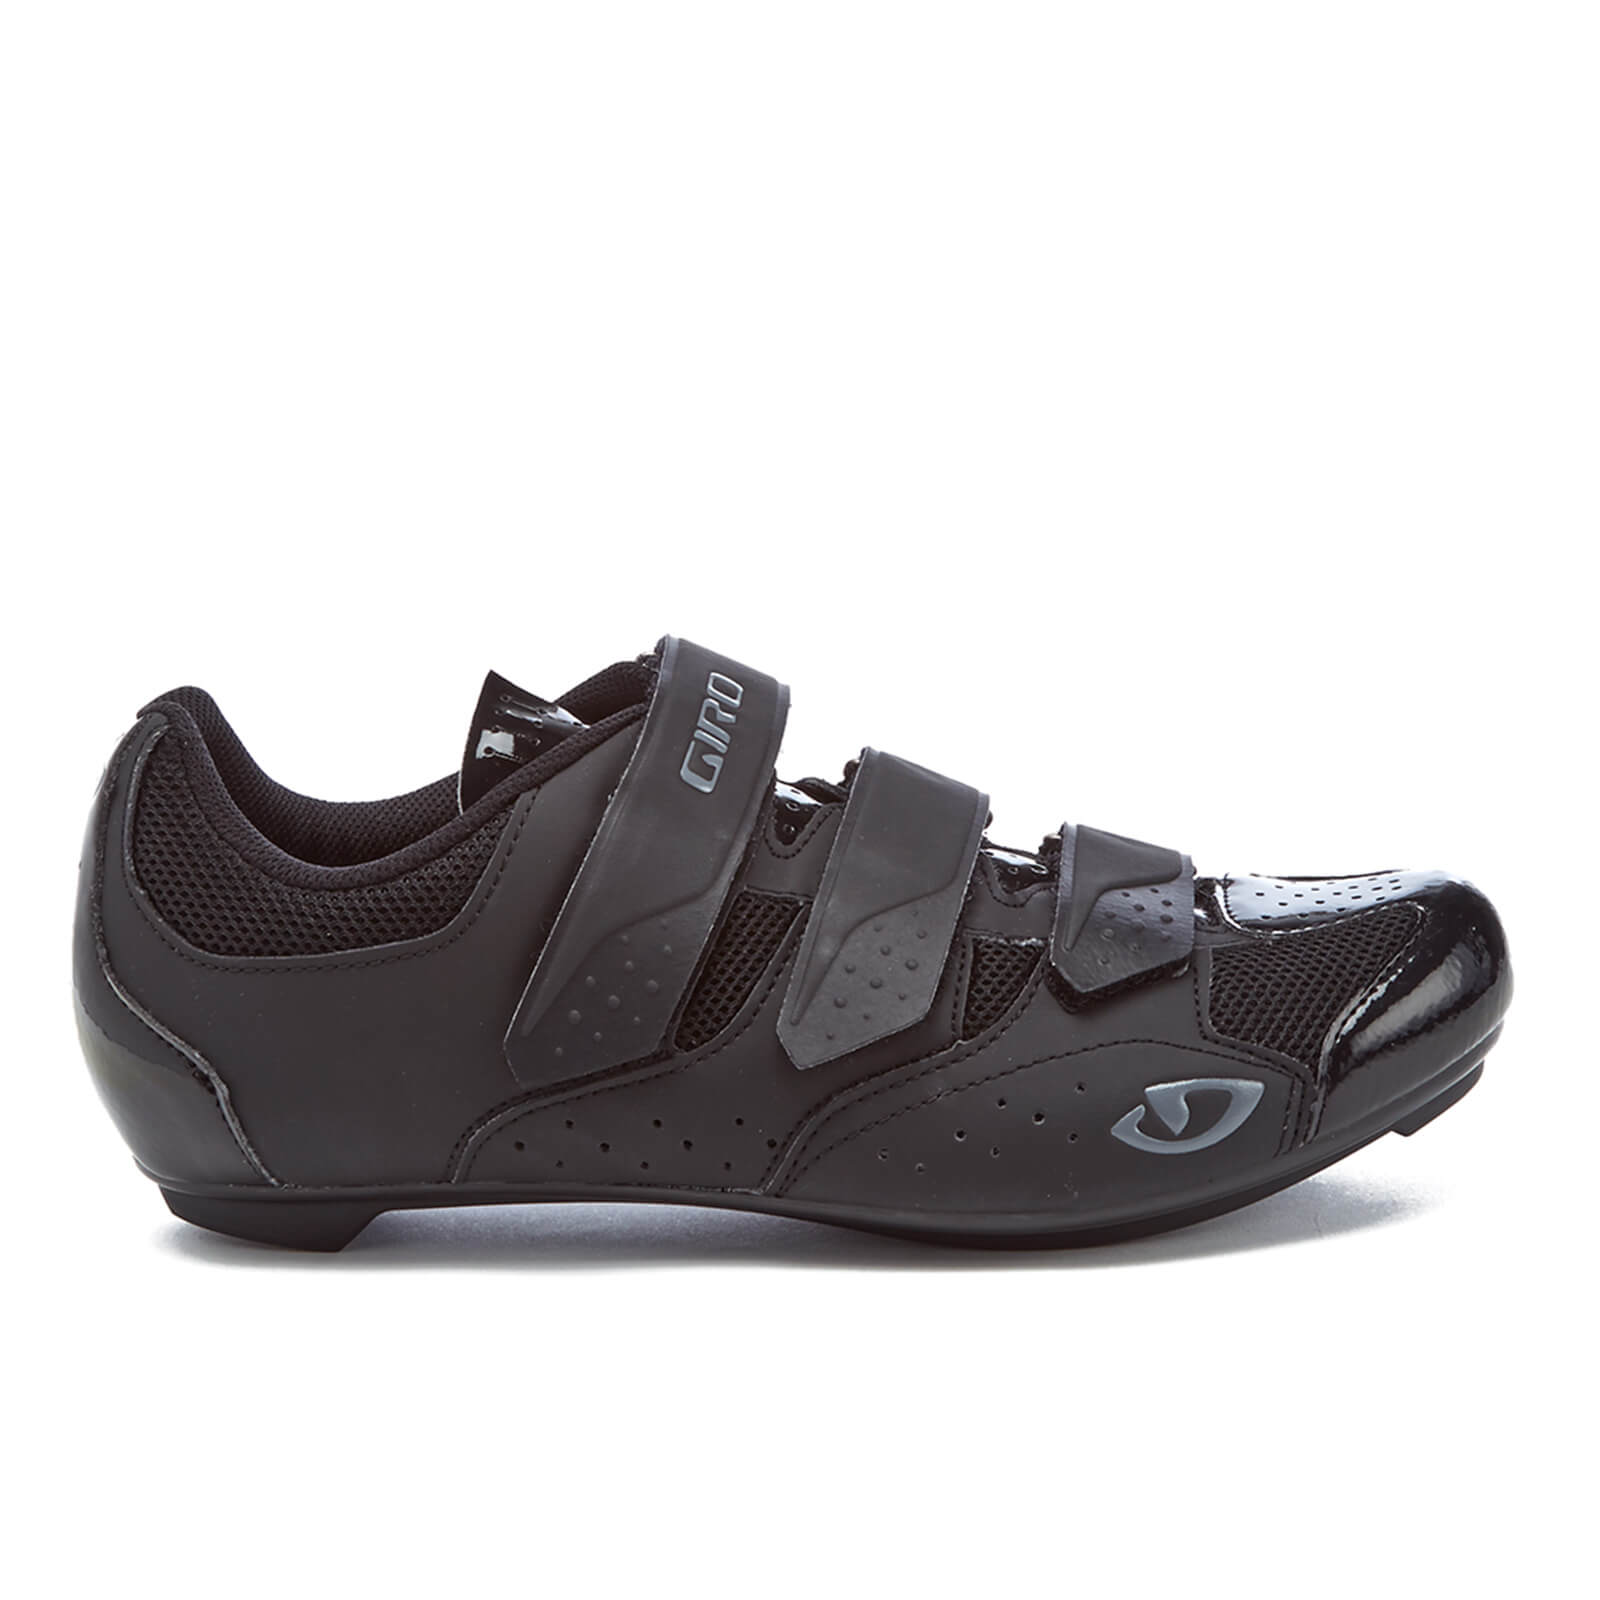 Giro Techne Road Cycling Shoes - Black